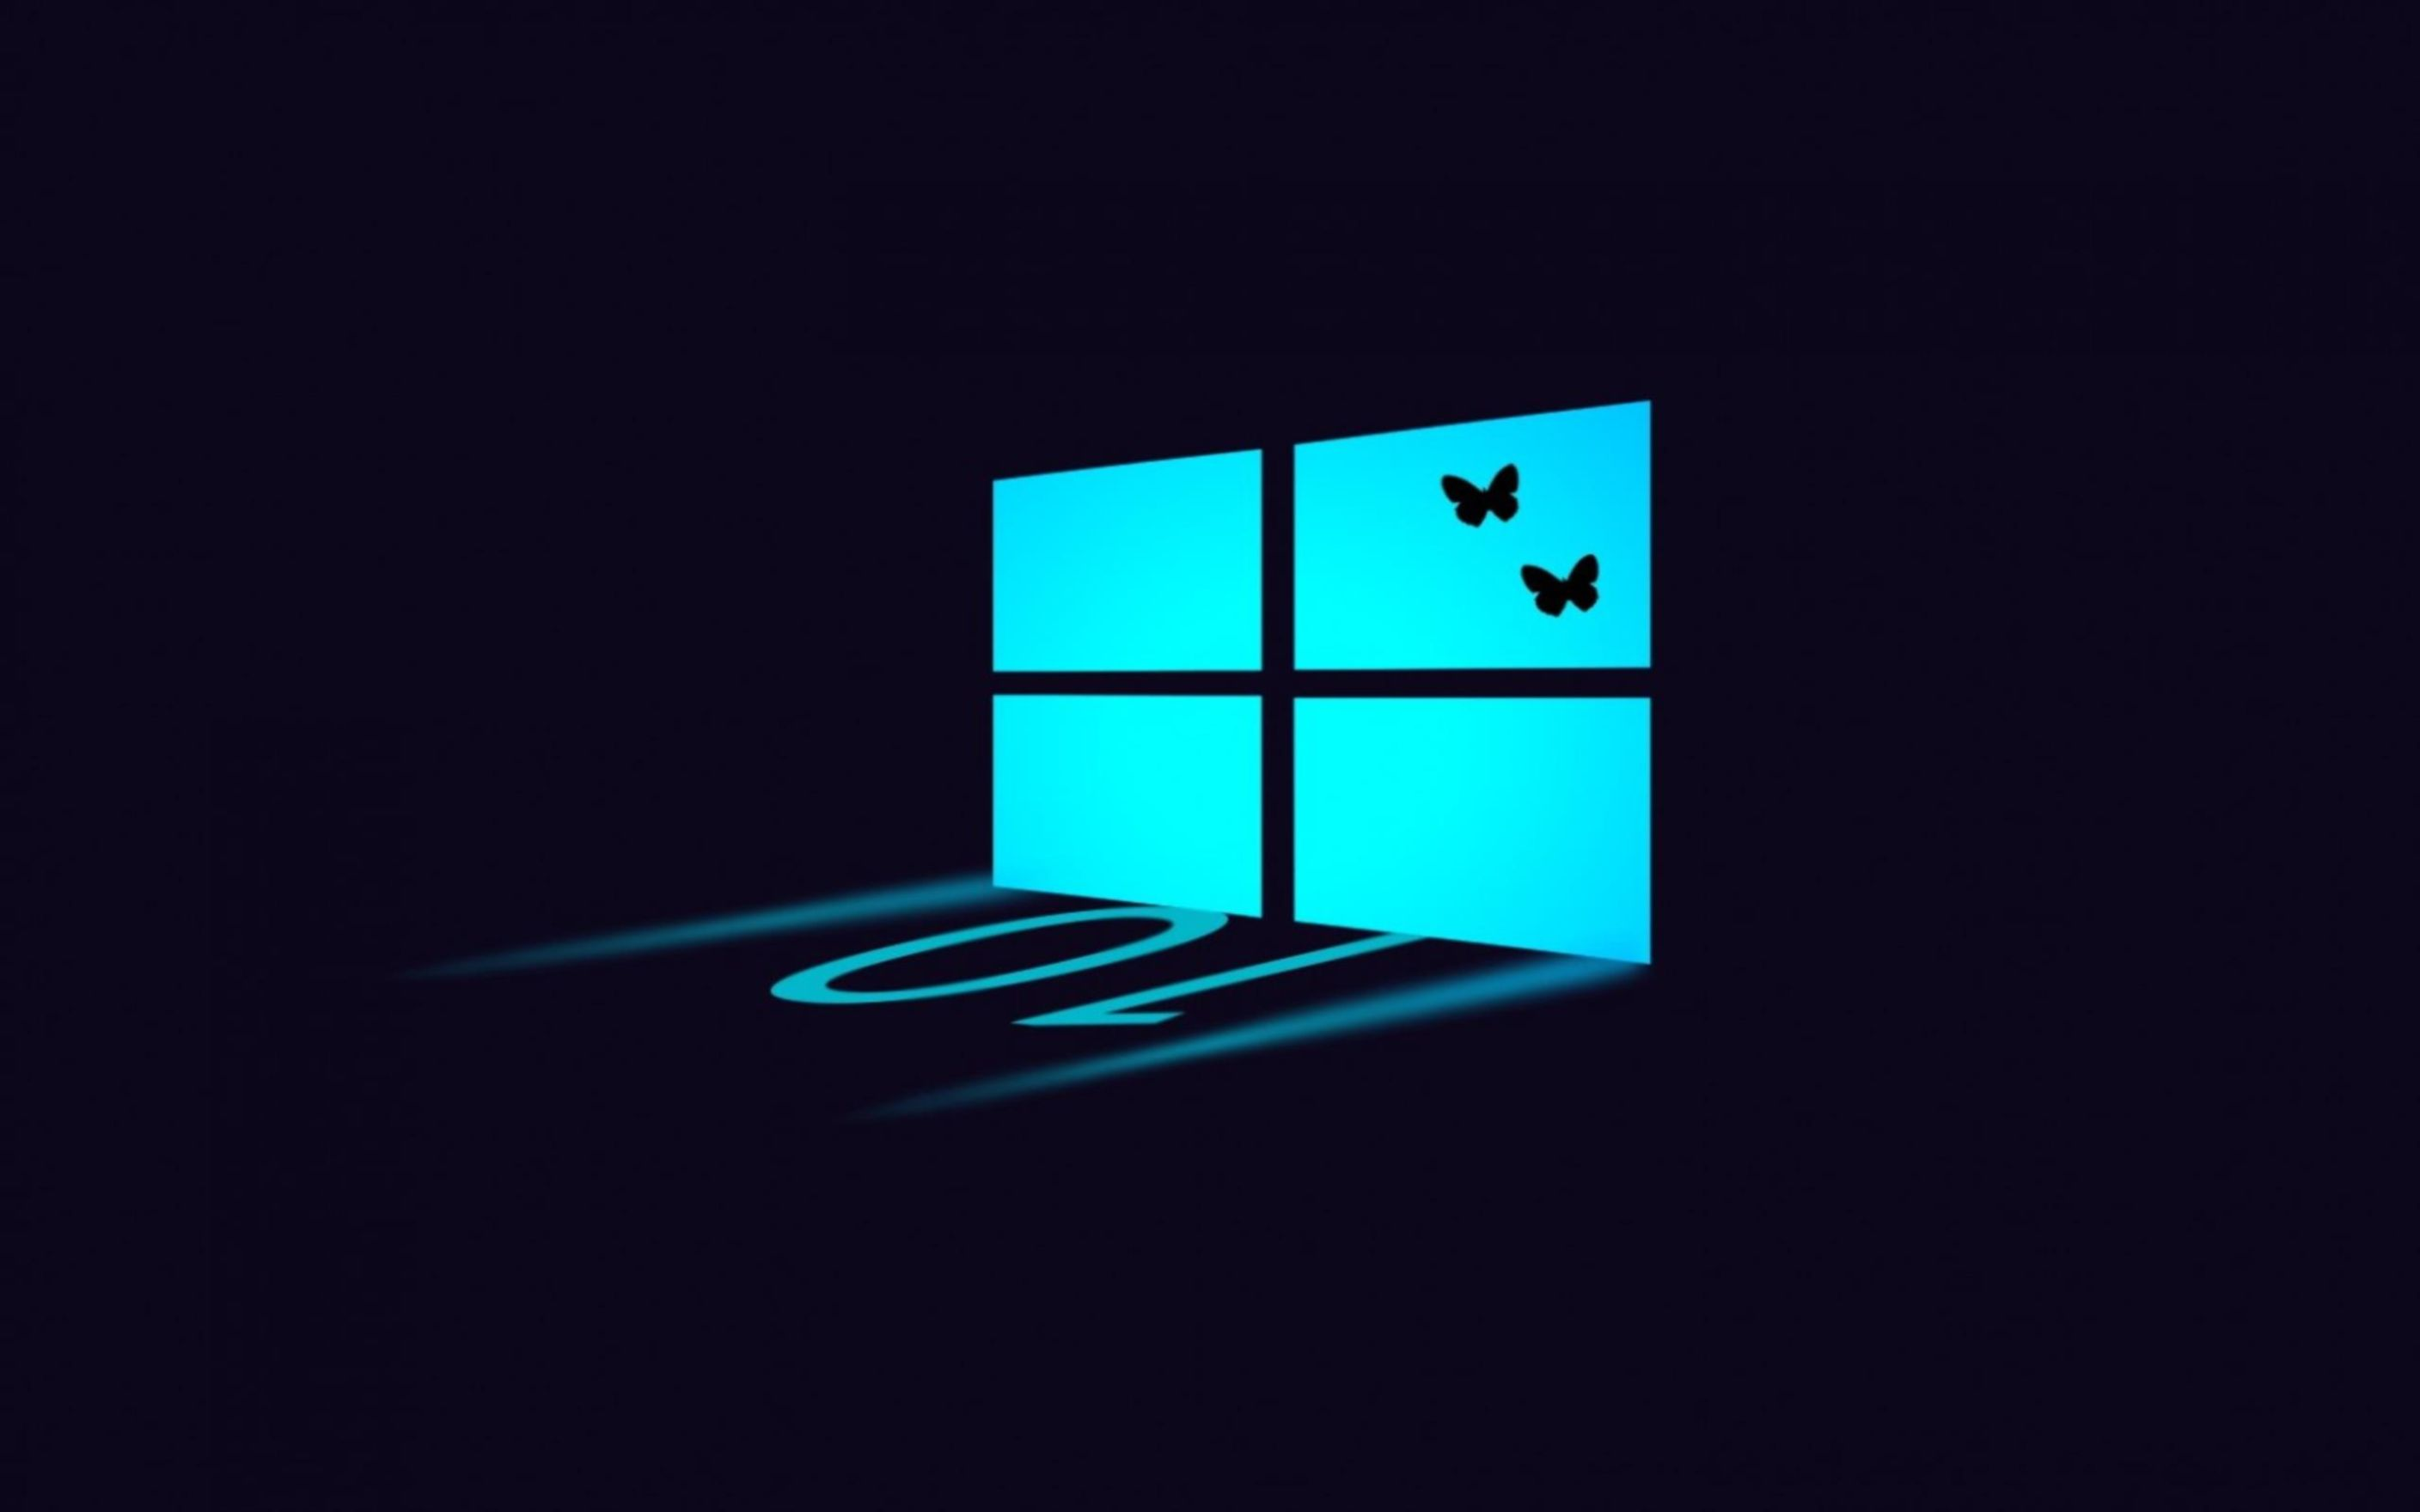 Windows wallpapers free | top wallpapers.